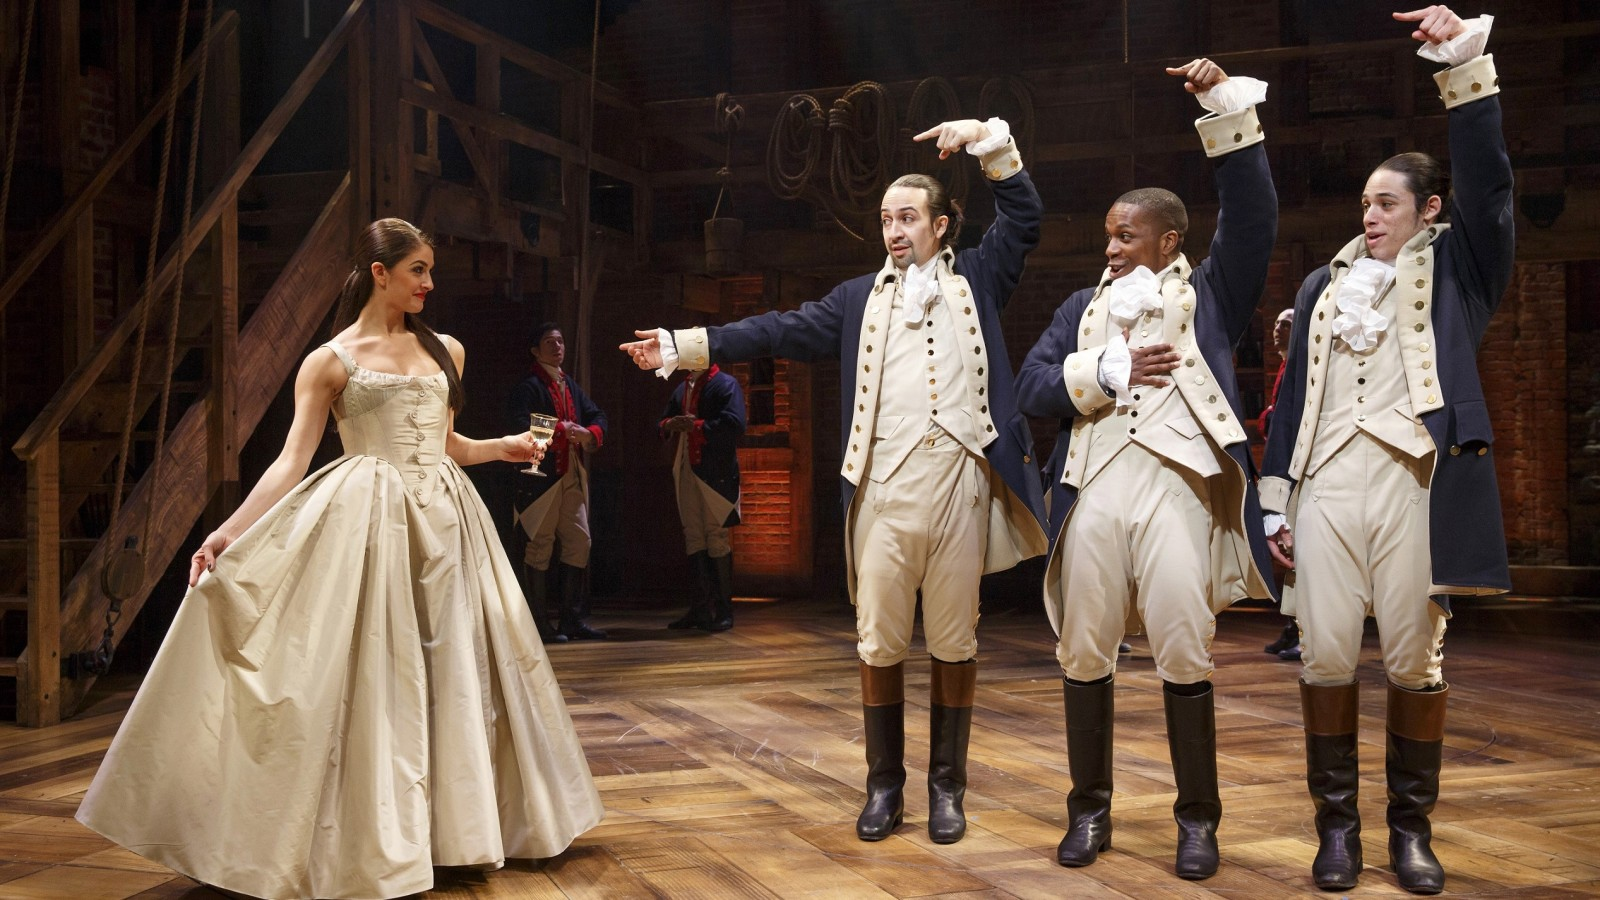 A touring version of 'Hamilton,' shown here with its original Broadway cast, anchors the 2018-19 season at Shea's Performing Arts Center. (Photo by Joan Marcus)